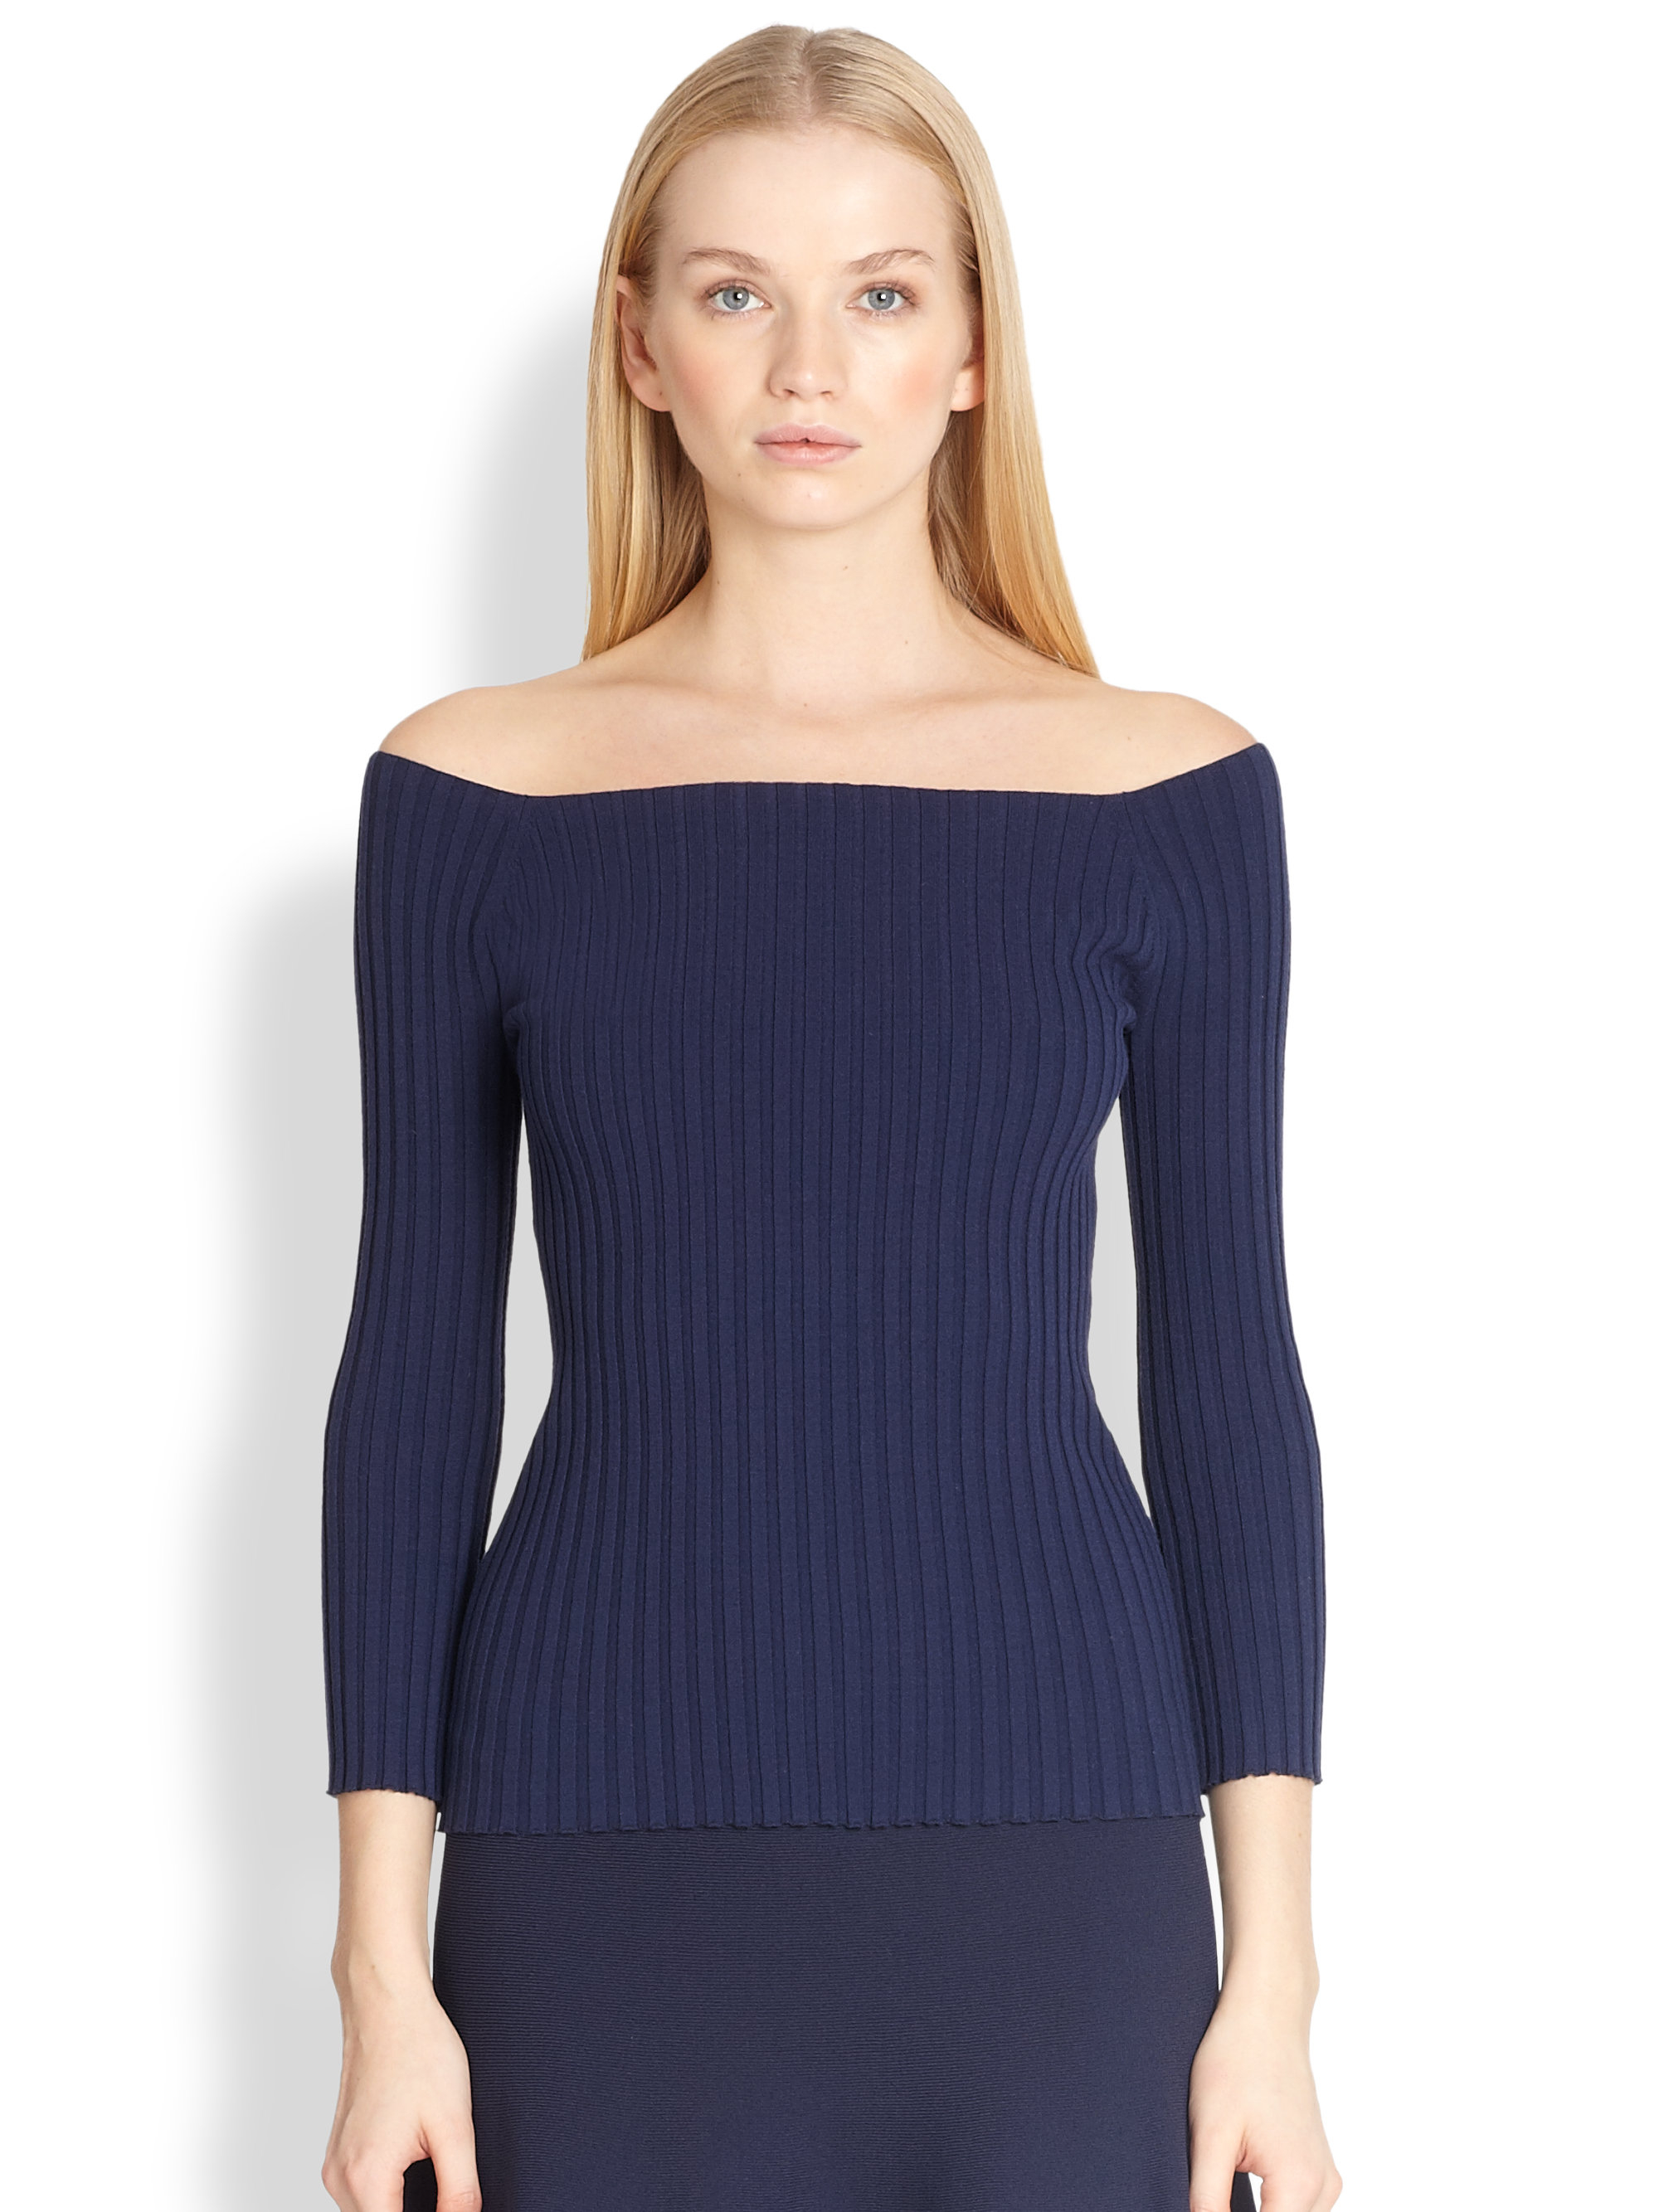 Michael kors Ribbed Off-the-shoulder Sweater in Blue | Lyst